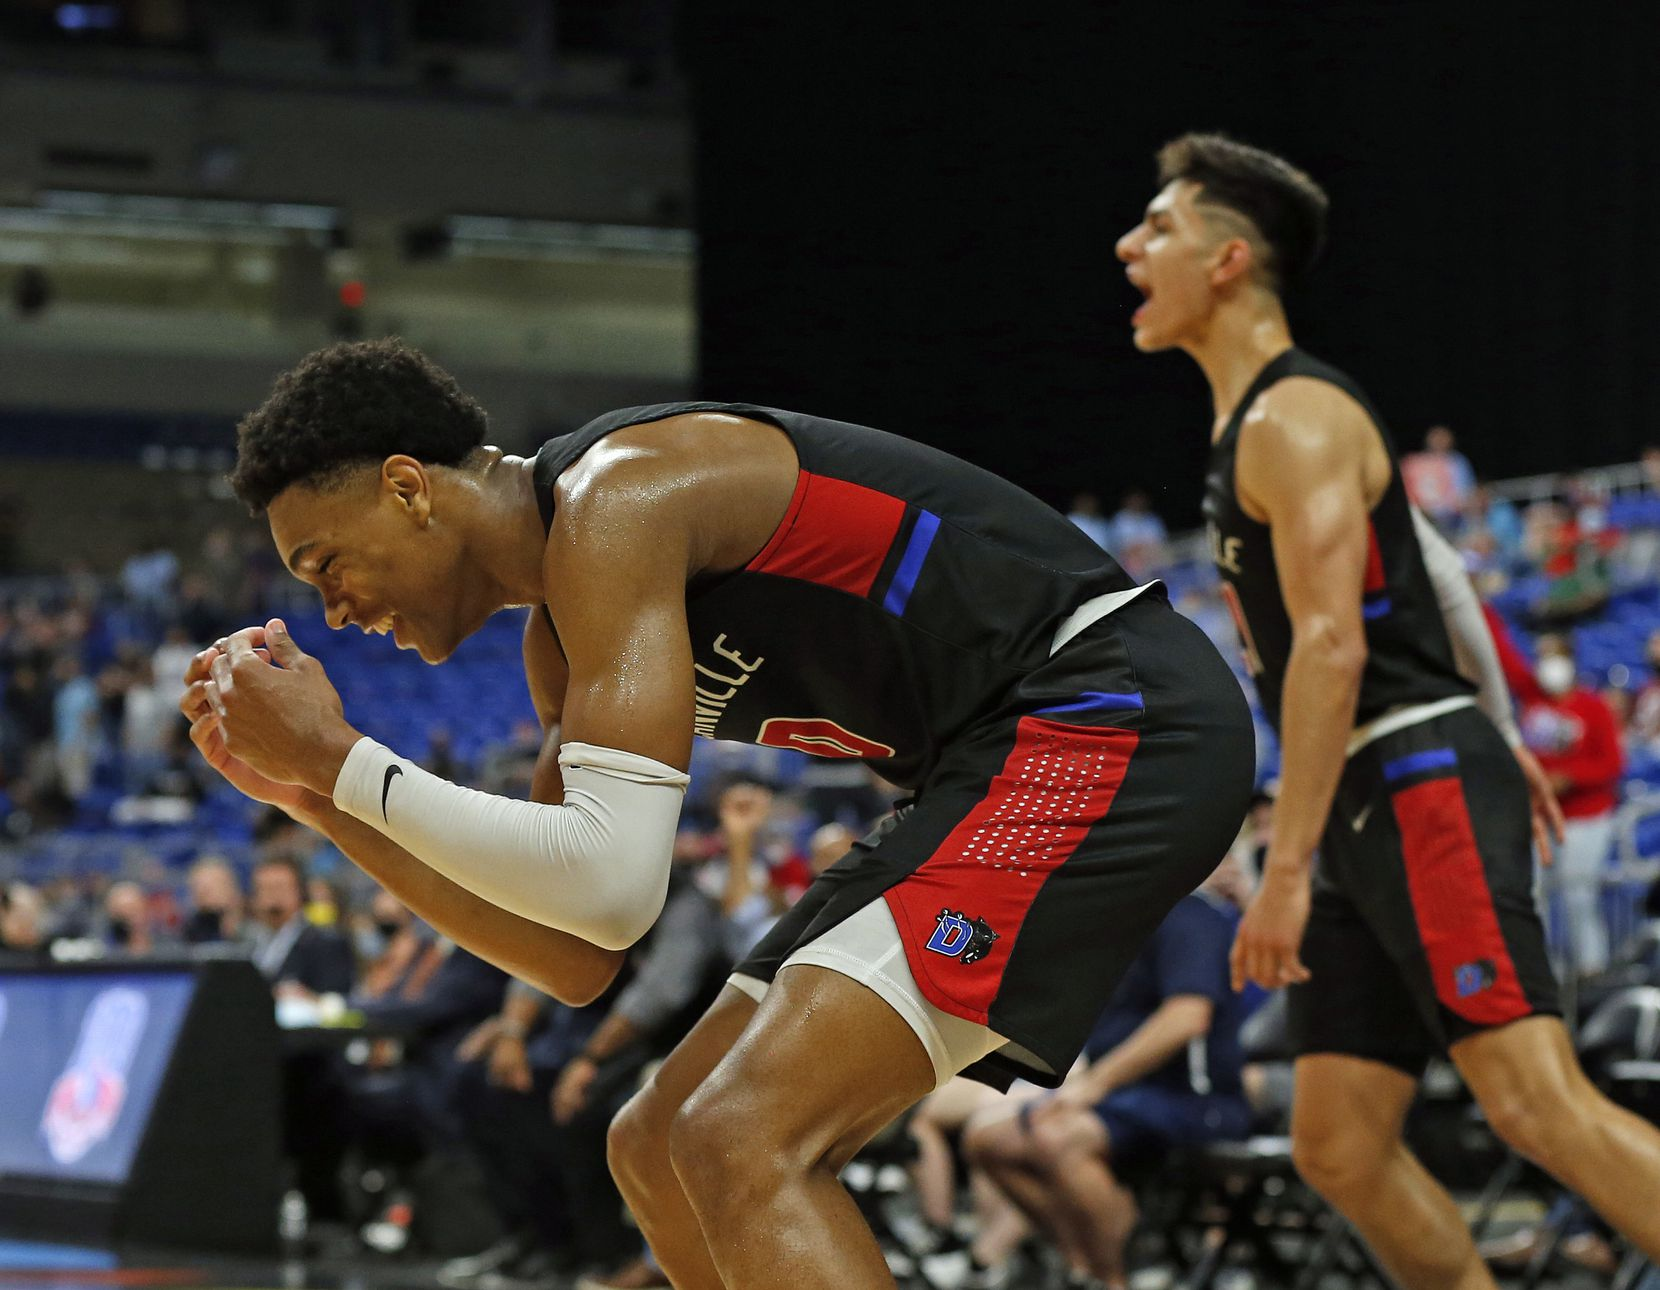 Duncanville Zhuric Phelps #0 reacts at the end of the game. UIL boys Class 6A basketball state championship game between Duncanville and Austin Westlake on Saturday, March 13, 2021 at the Alamodome.